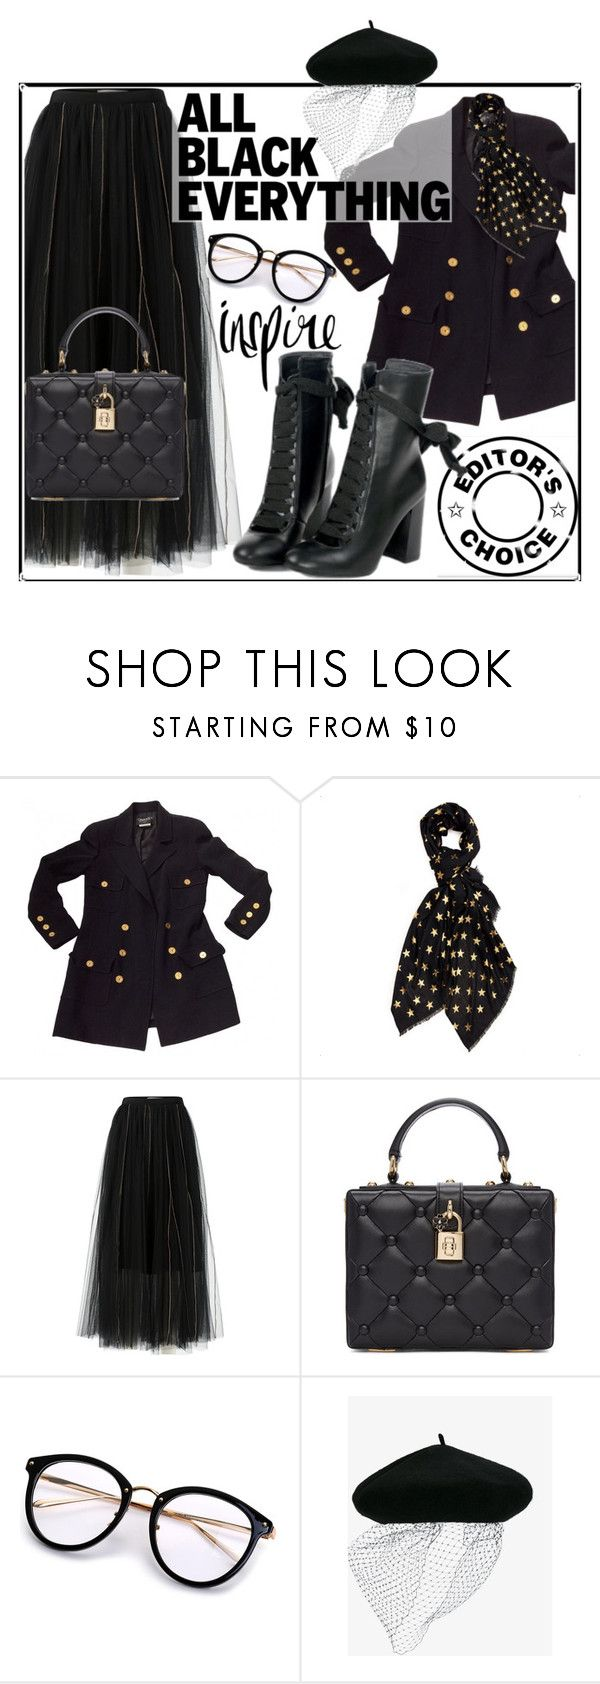 """""""Mission Monochrome: All-Black Outfit"""" by ella110 ❤ liked on Polyvore featuring Chanel, Dorothee Schumacher, Dolce&Gabbana, Silver Spoon Attire and allblackoutfit"""